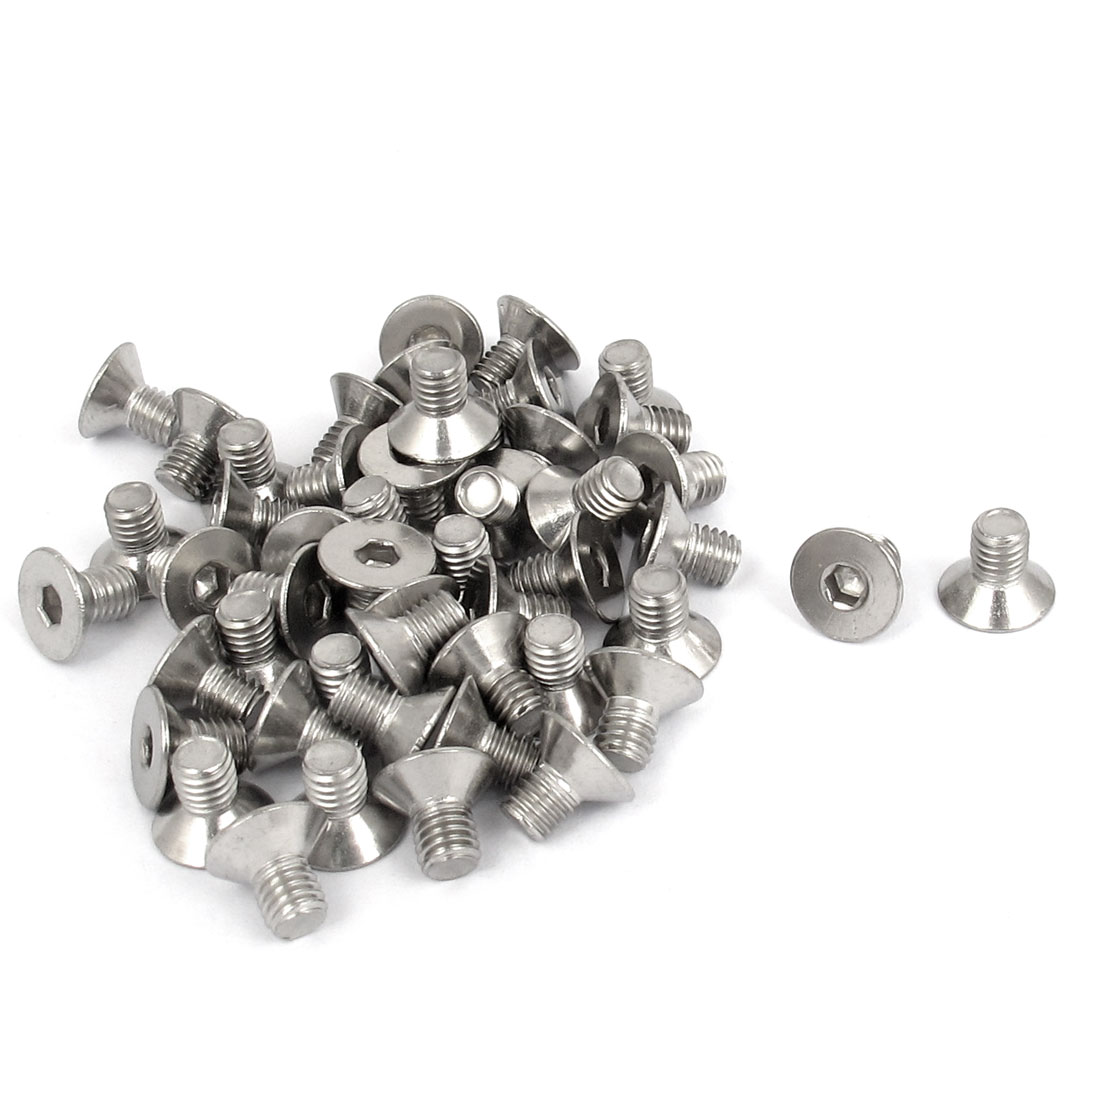 M5 x 8mm Metric 304 Stainless Steel Hex Socket Countersunk Flat Head Screw Bolts 50PCS